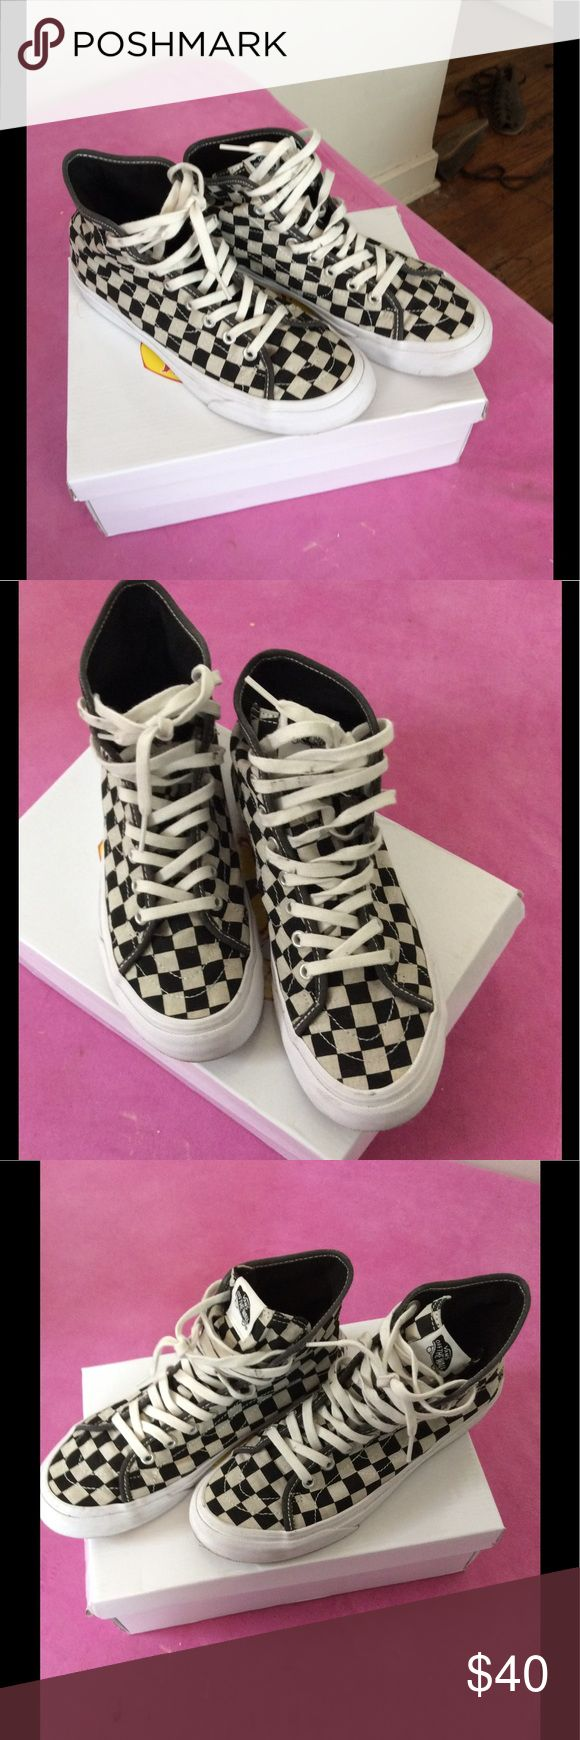 Checkered sk8 hi vans Sk8-hi checkered vans Vans Shoes Sneakers